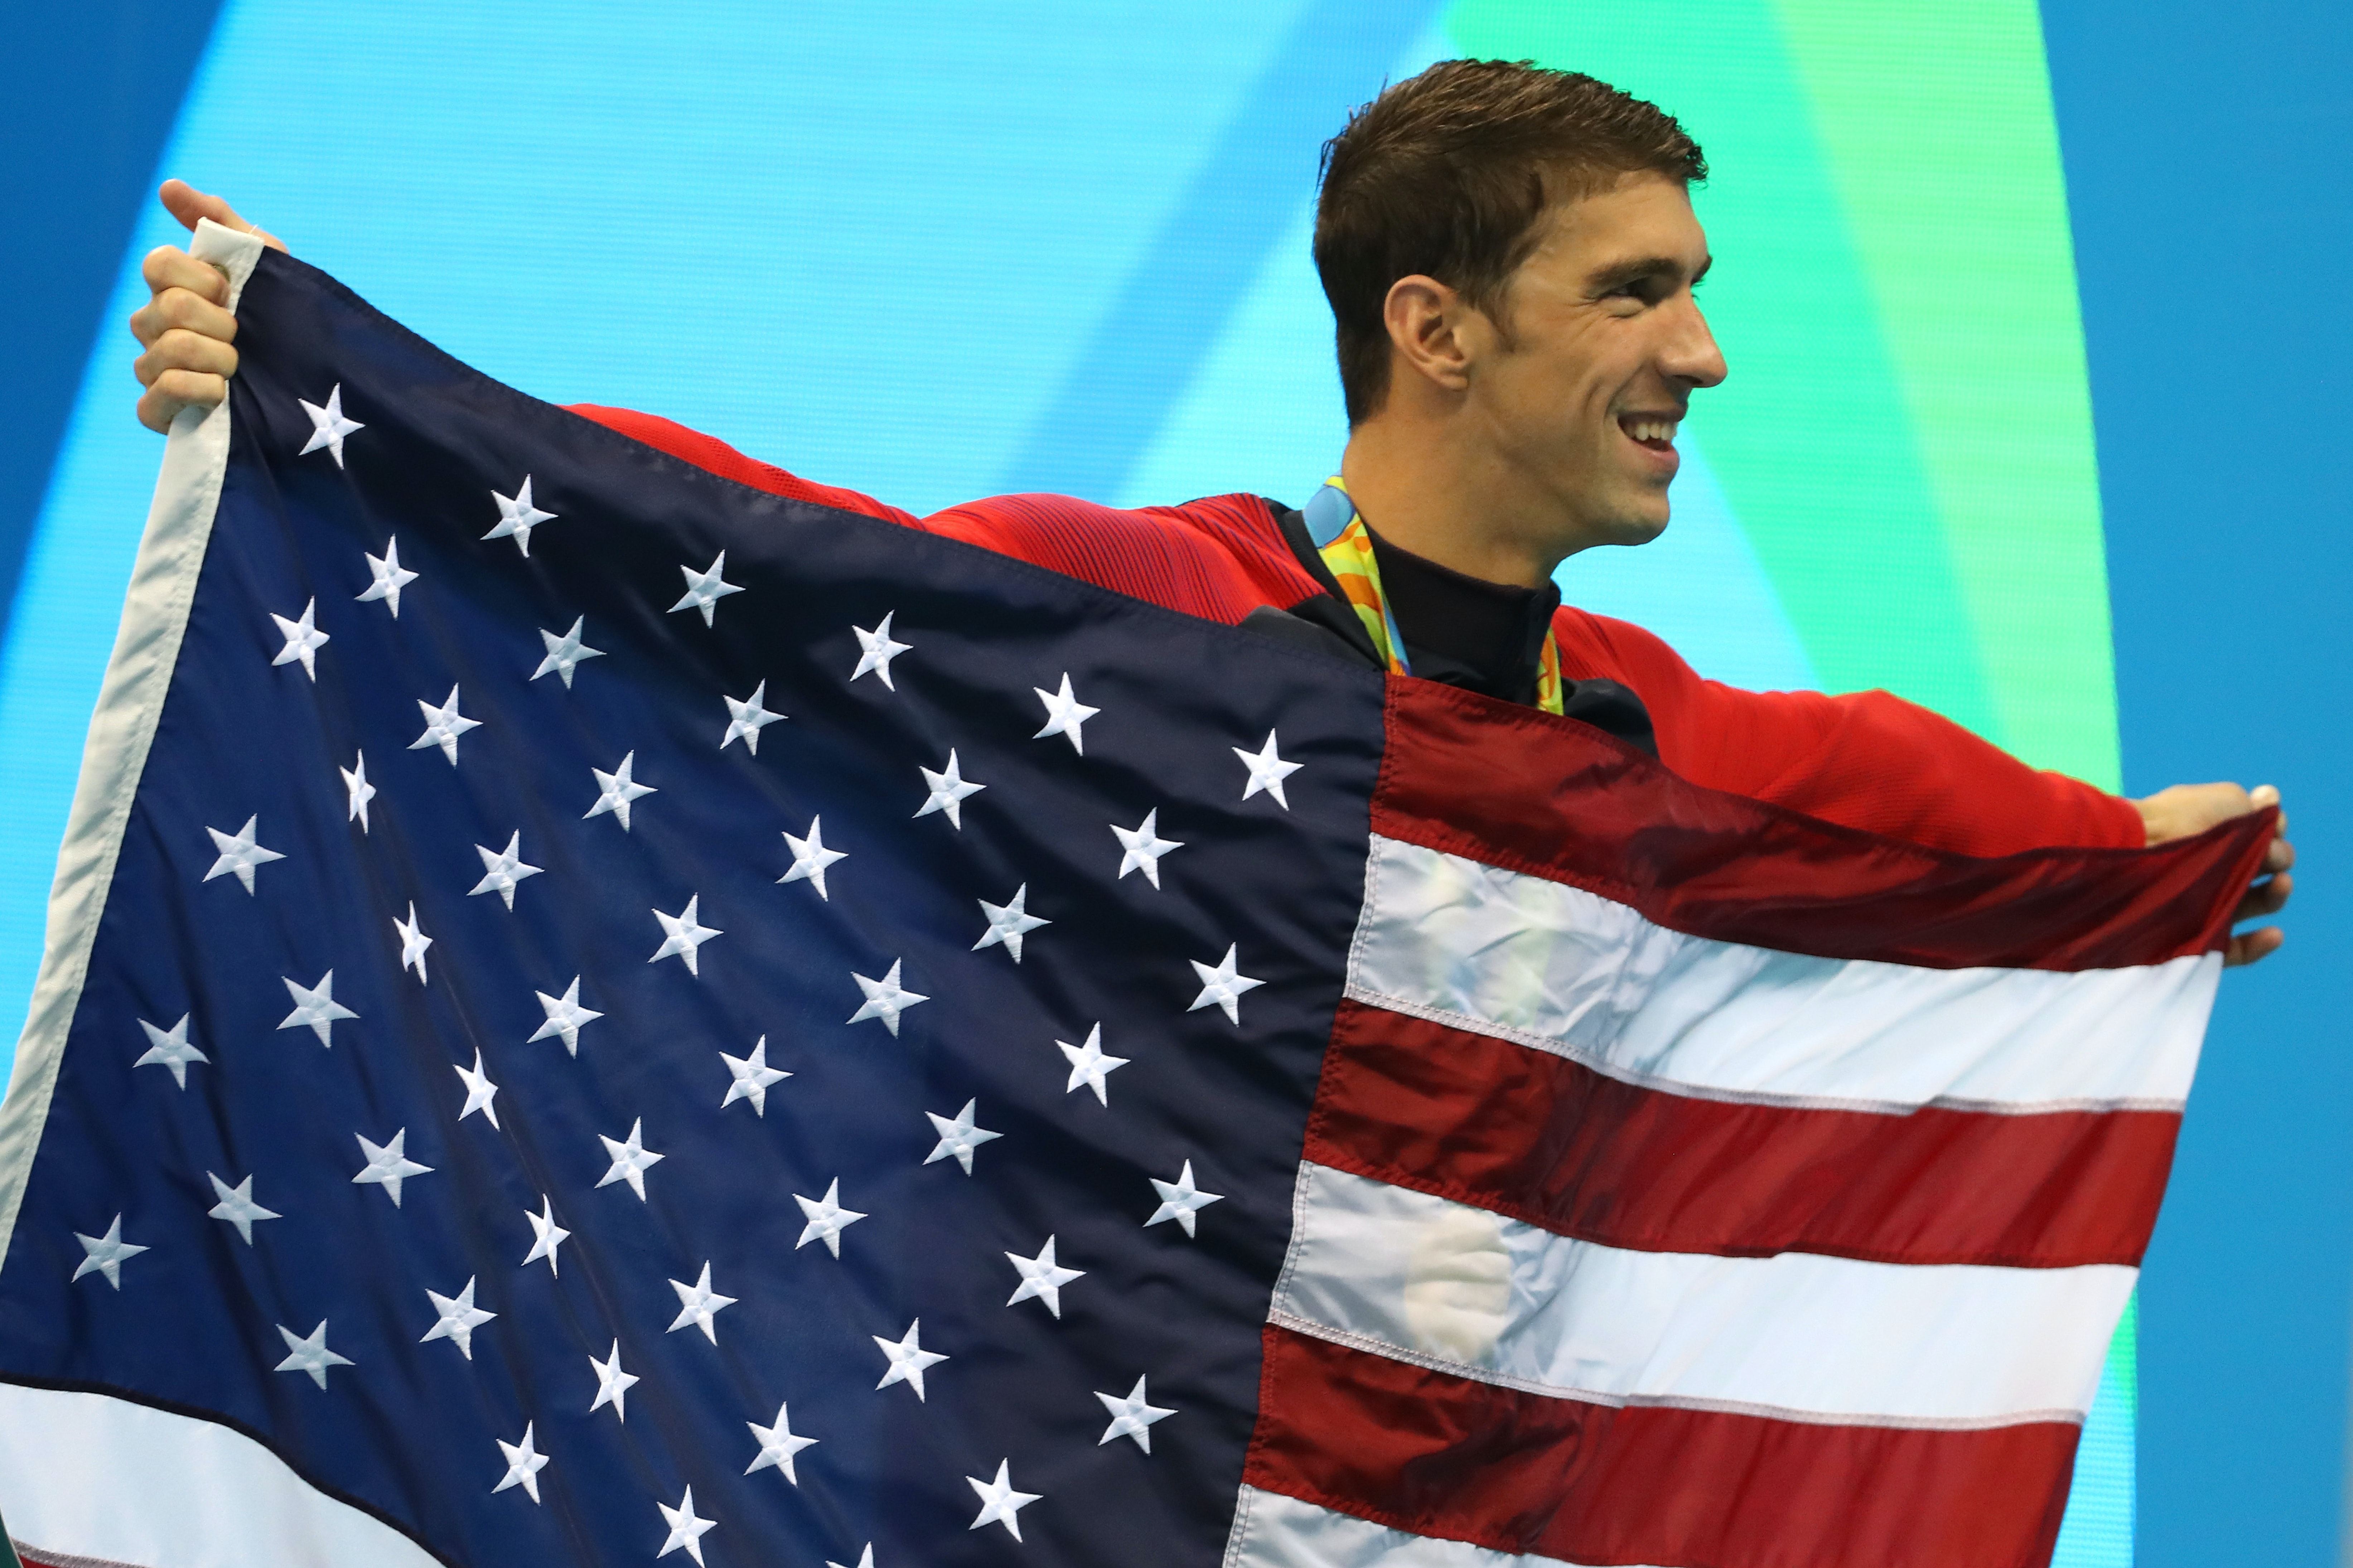 Male athletes, like Michael Phelps, are also subject to androgen testing but are less likely than women to have their gender questioned as a result.